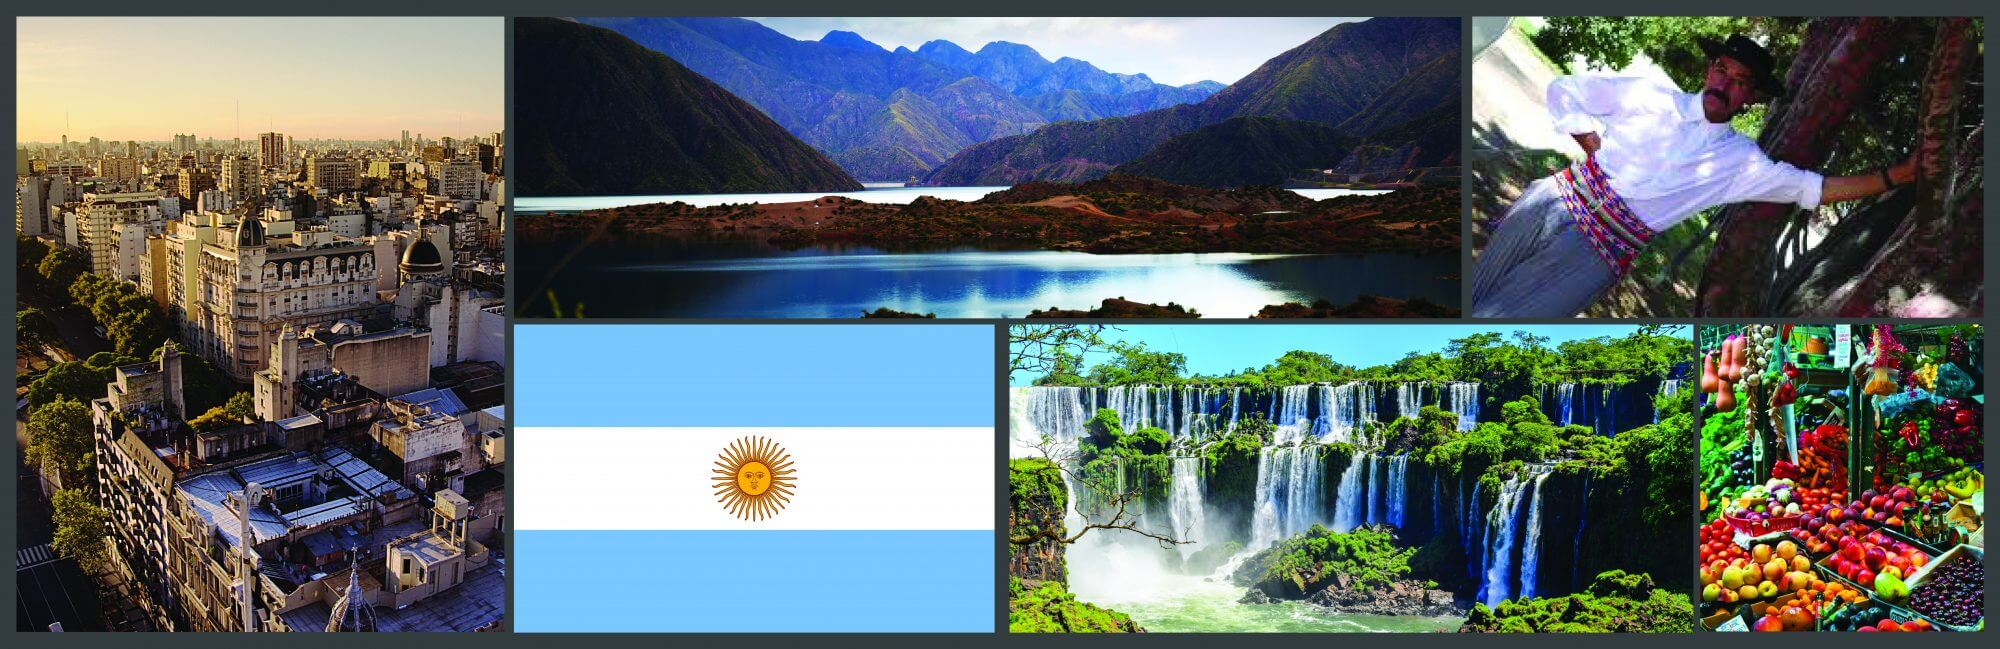 Longhaul Argentina Tours with inspiresport